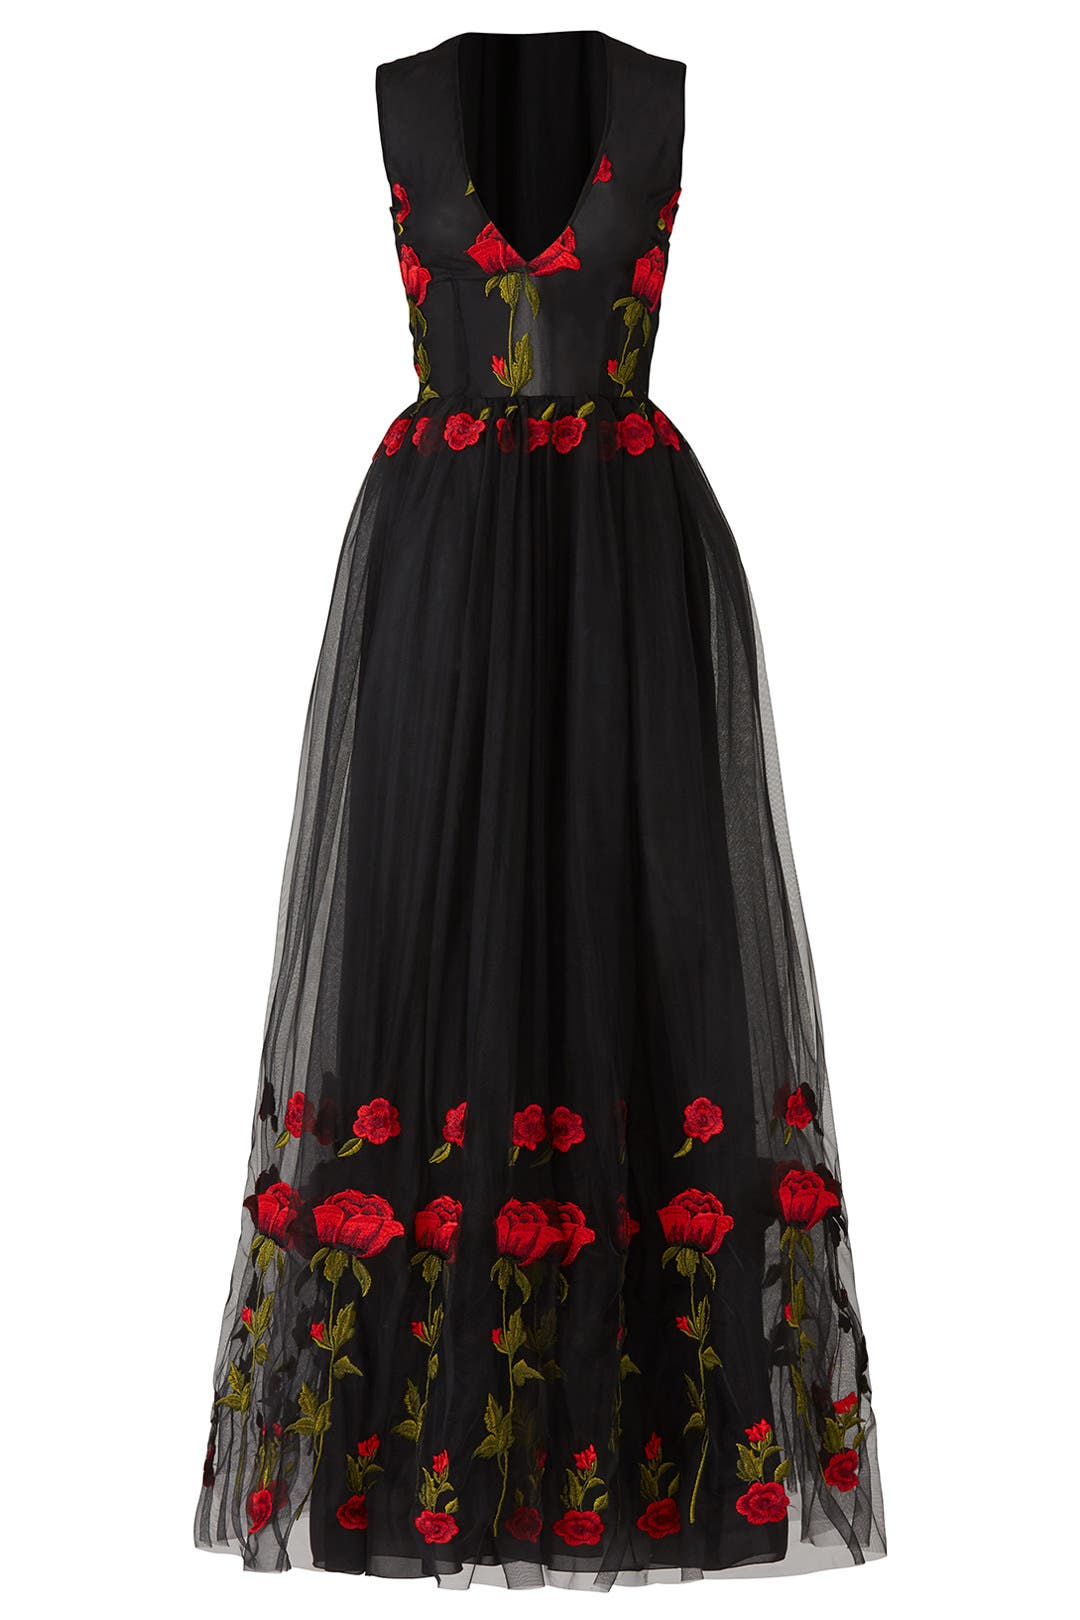 Red Rose Cake Dress by Alcoolique for $155 - $175   Rent the Runway